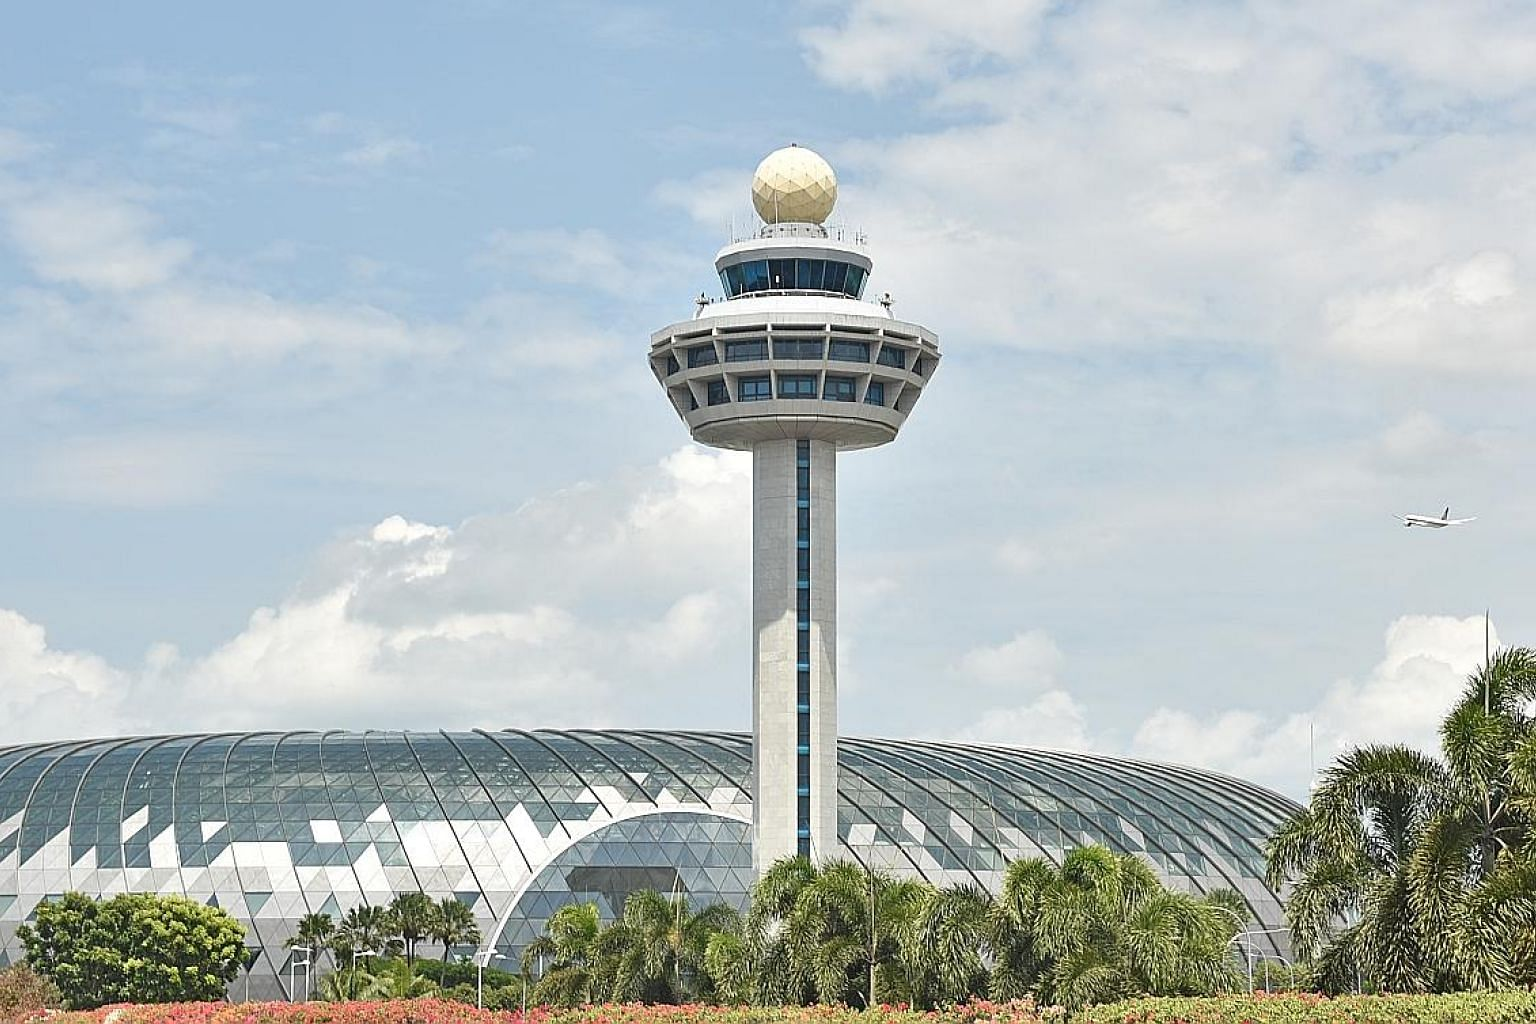 Changi Airport's control tower. NATS was appointed by the Civil Aviation Authority of Singapore in November 2017 to develop the smart digital tower prototype, which is expected to undergo testing for at least six months. If the technology is proven r